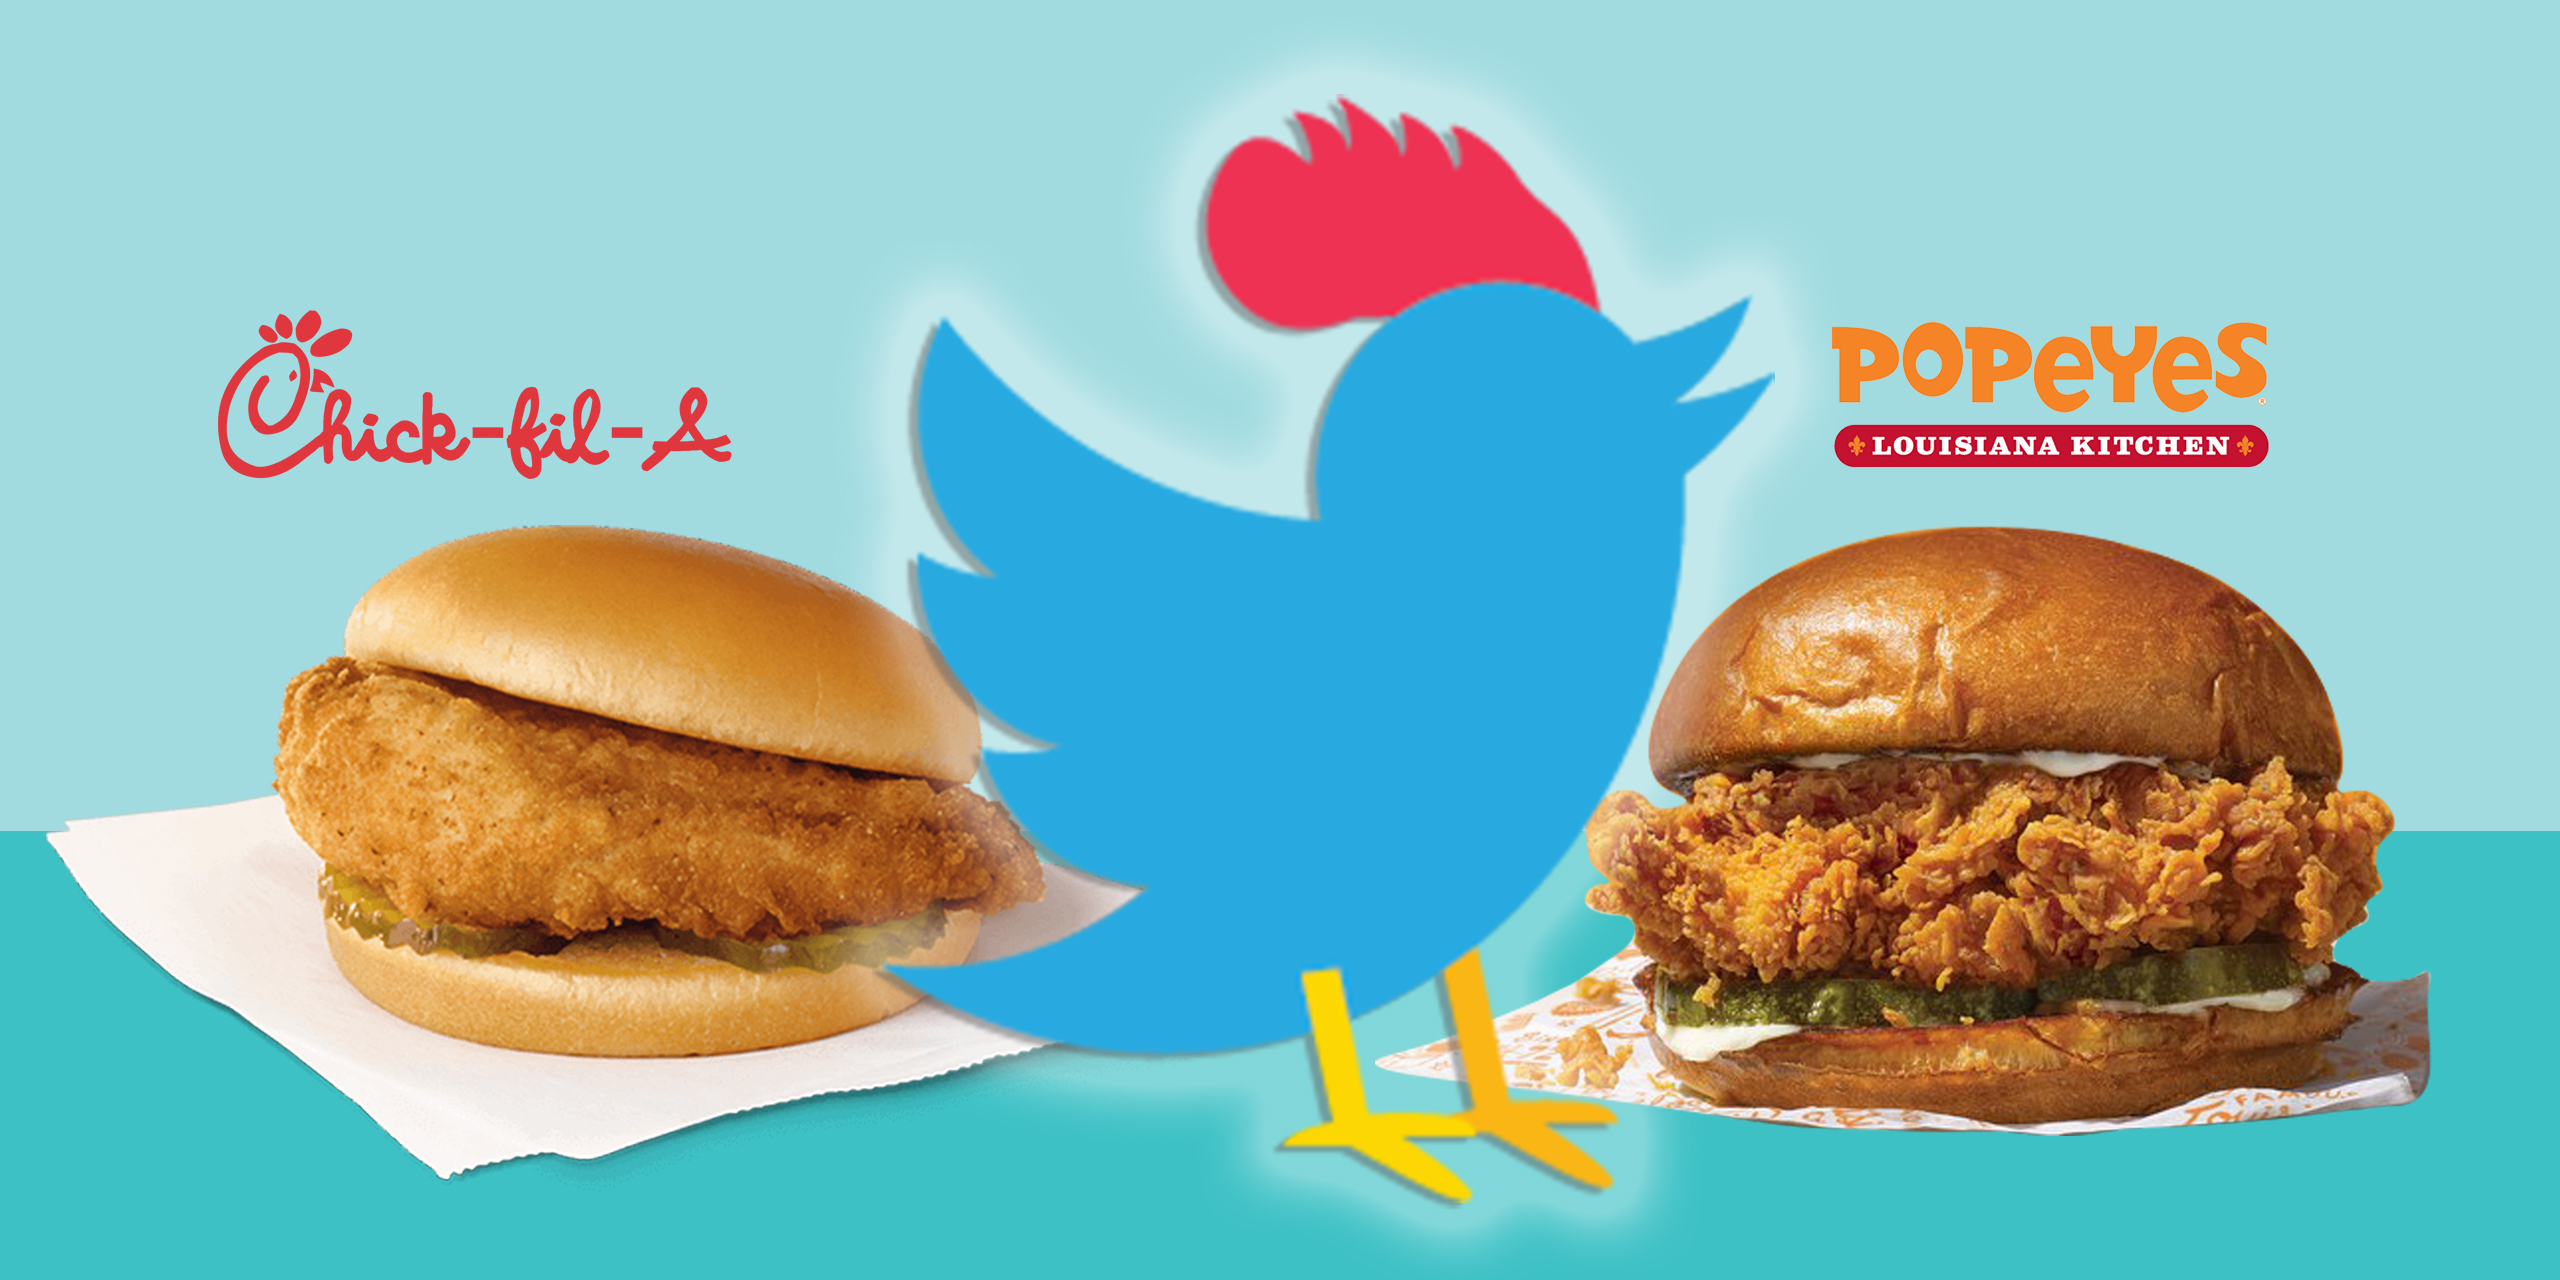 Chick-fil-A in Chicken Fight with Popeyes, but Wendy's Rules the Roost